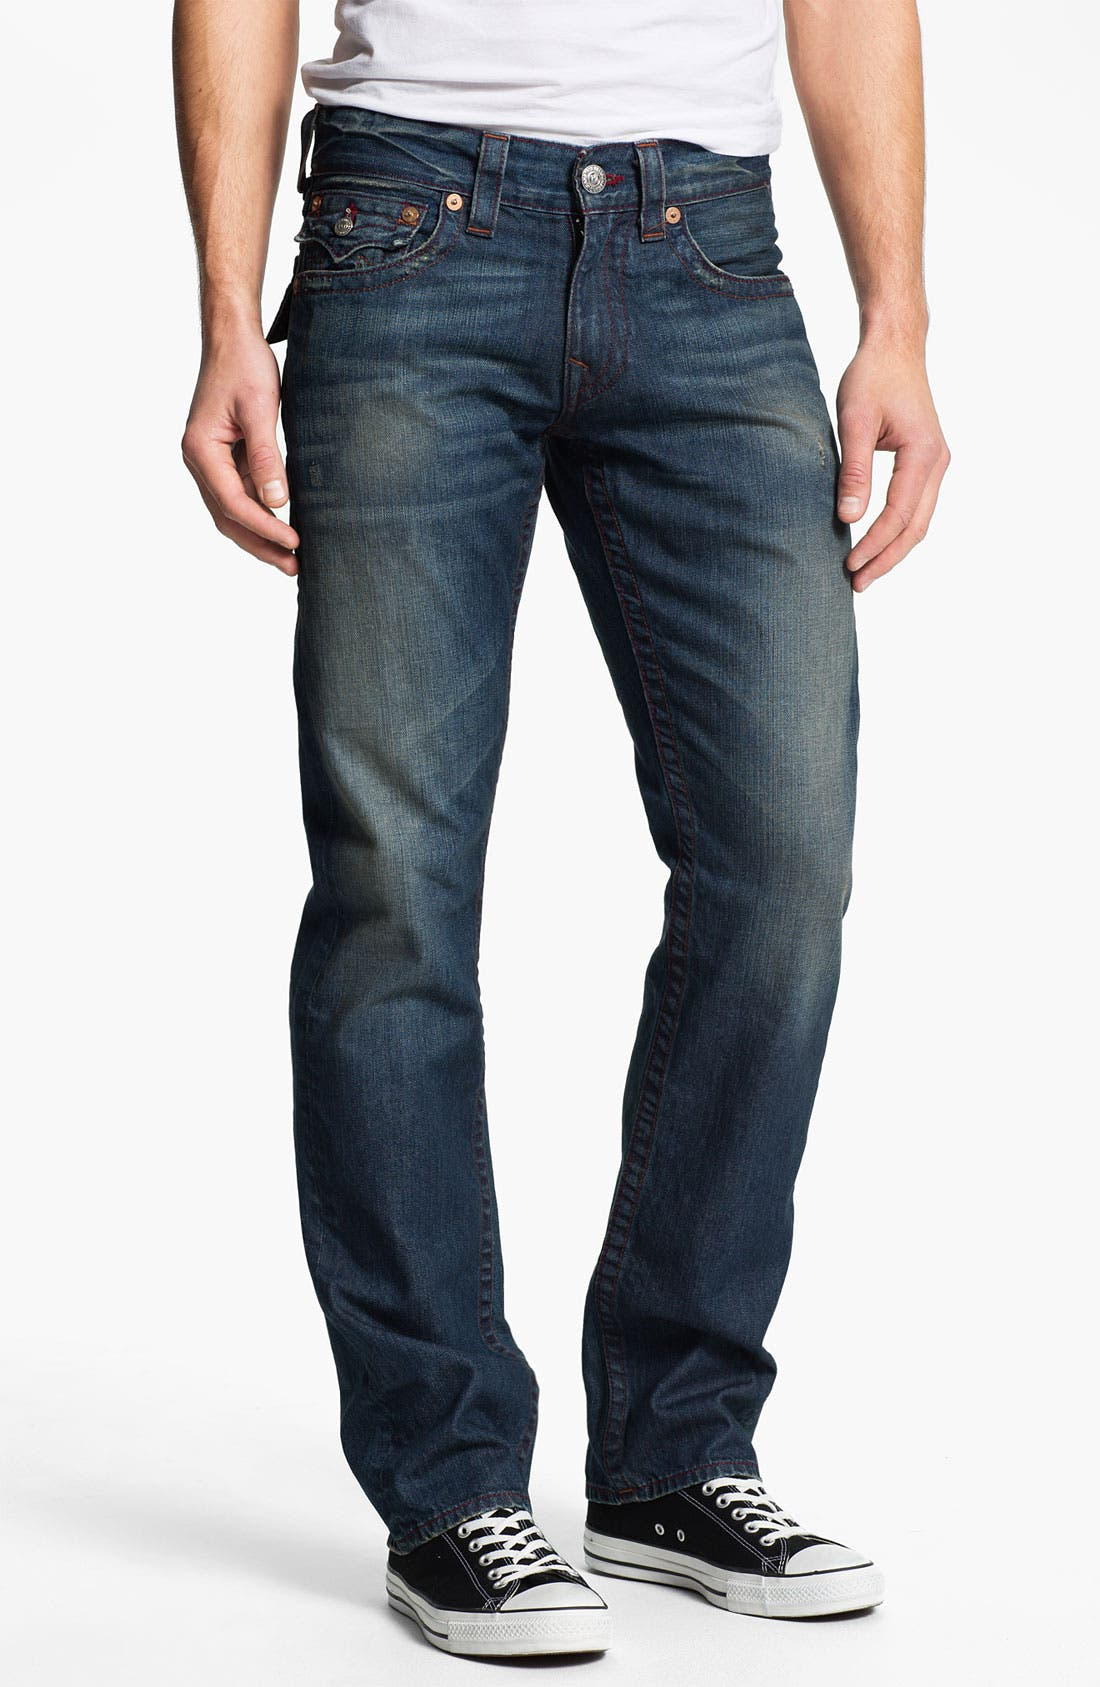 Alternate Image 2  - True Religion Brand Jeans 'Ricky' Straight Leg Jeans (Dark Drifter)